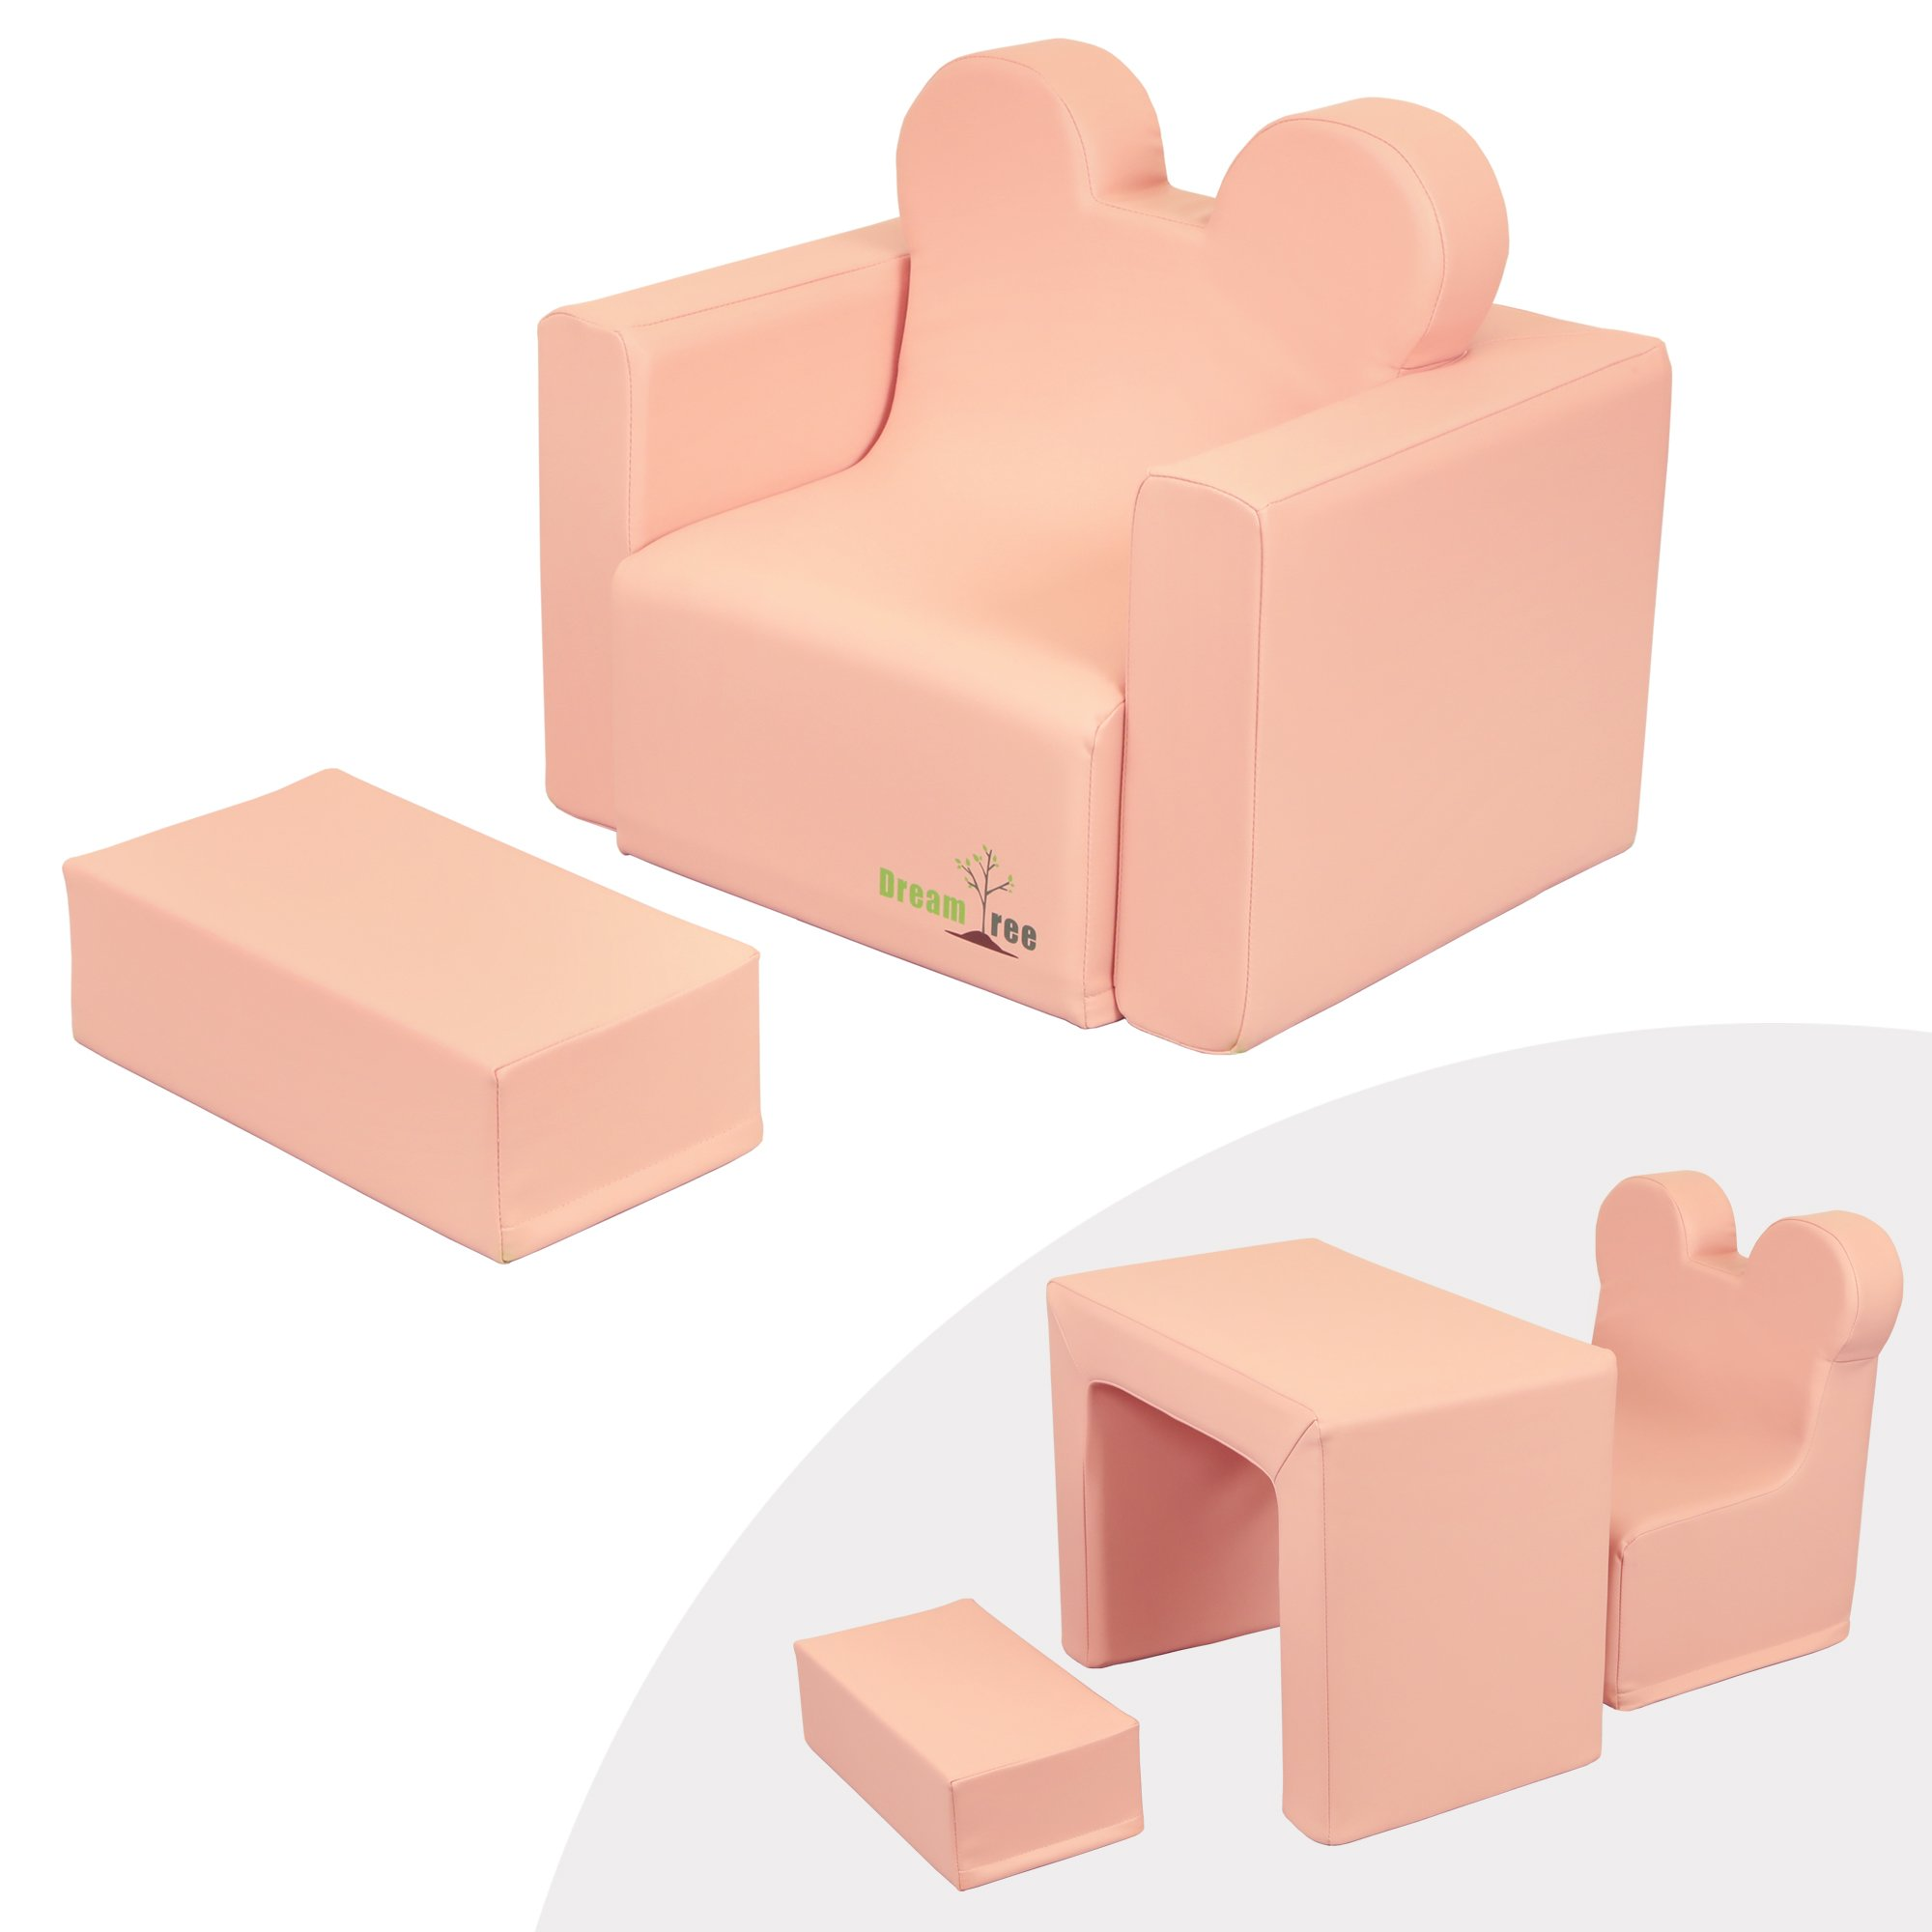 Dream Tree Toddler Table and Chair Set (Sofa Type) Washable, Safe Non-Toxic CPSIA Compliant Soft Foam Furniture for Baby, Kids, and Child - Pink